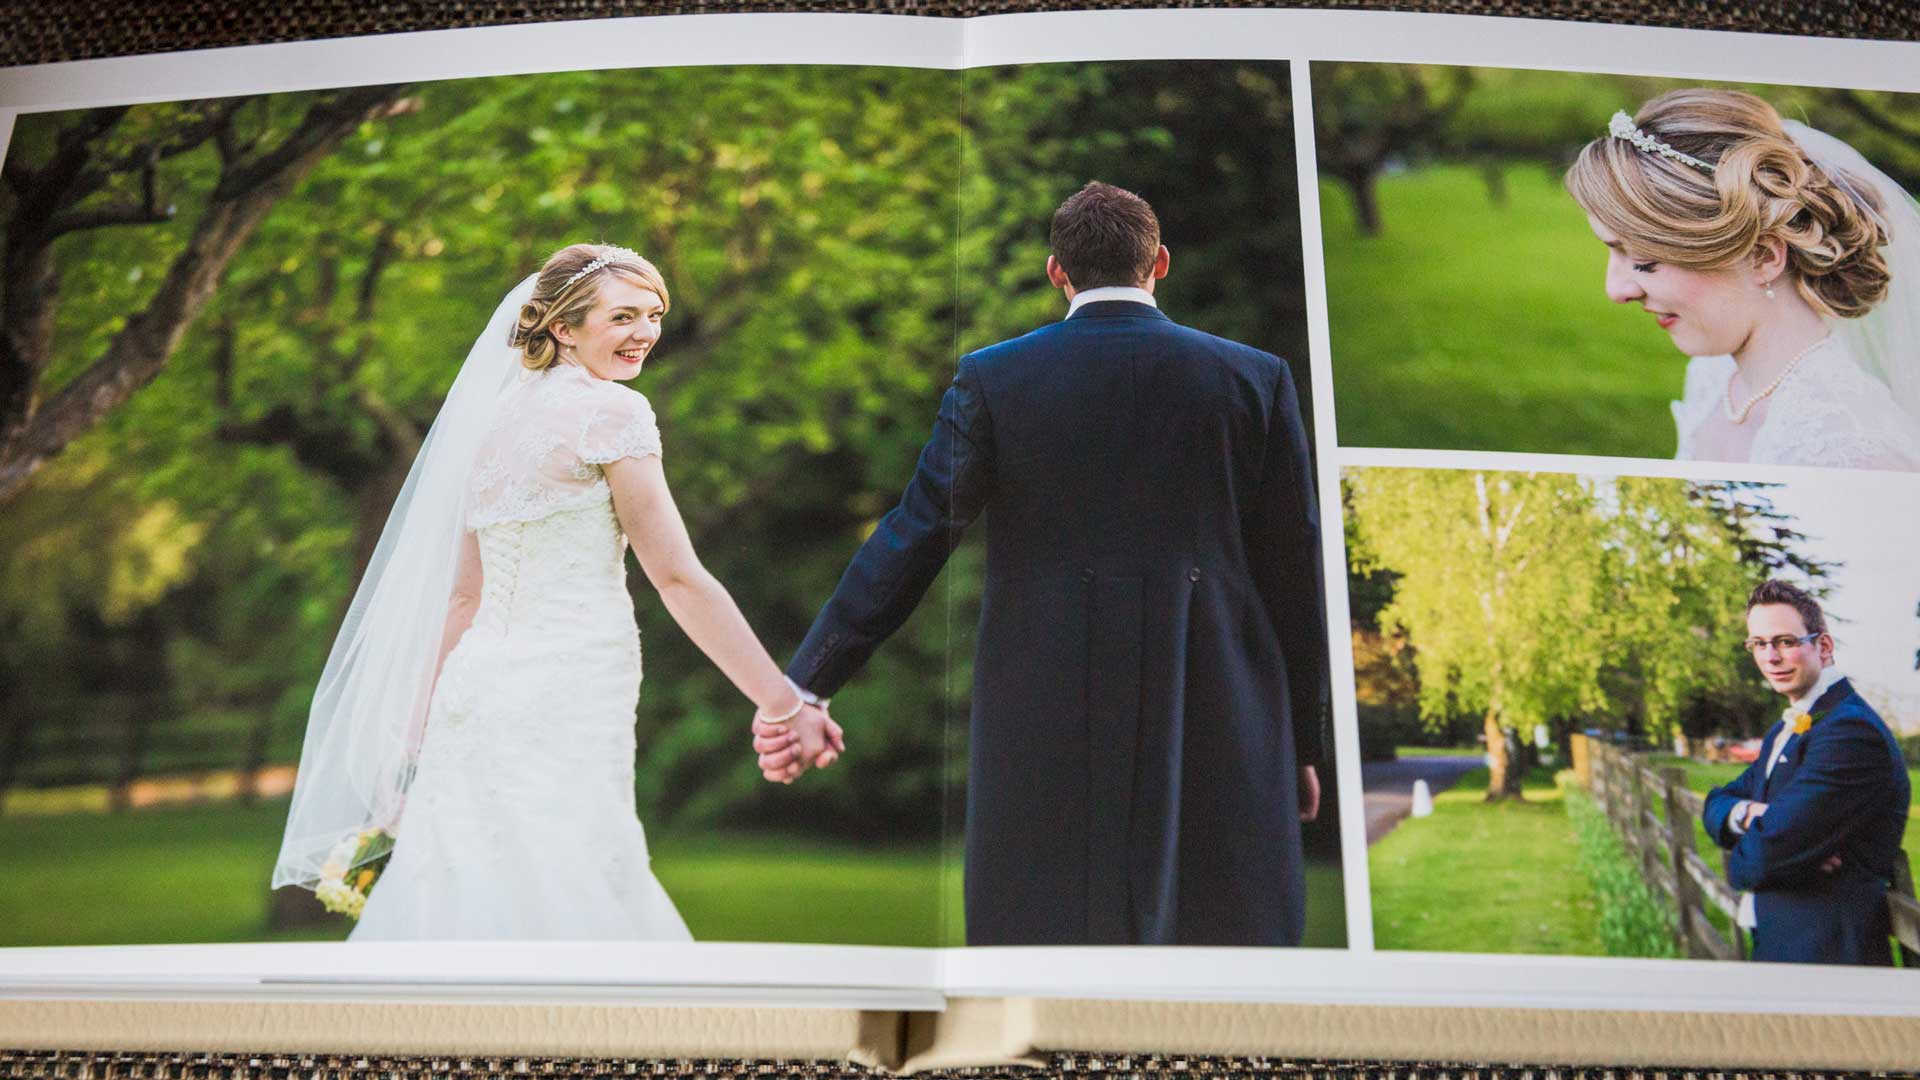 Quality wedding photo albums from Martin Hemsley Photography - a delight for years to come